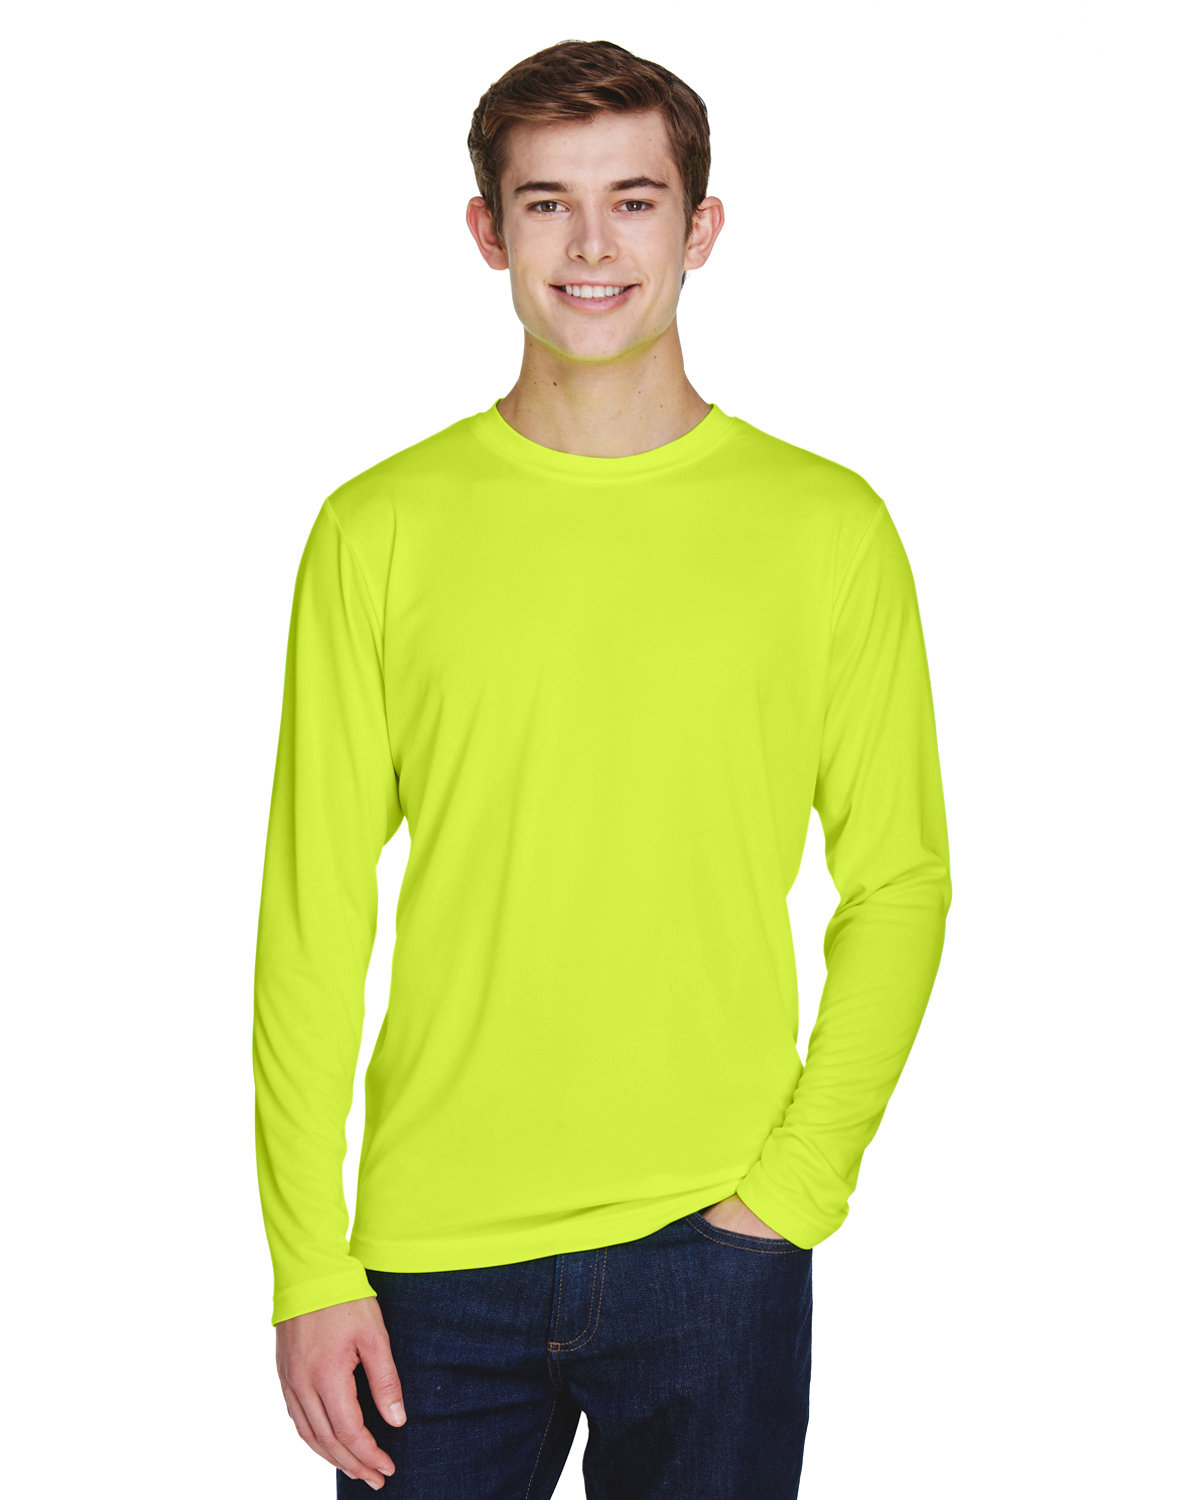 Team 365 Men's Zone Performance Long-Sleeve T-Shirt SAFETY YELLOW